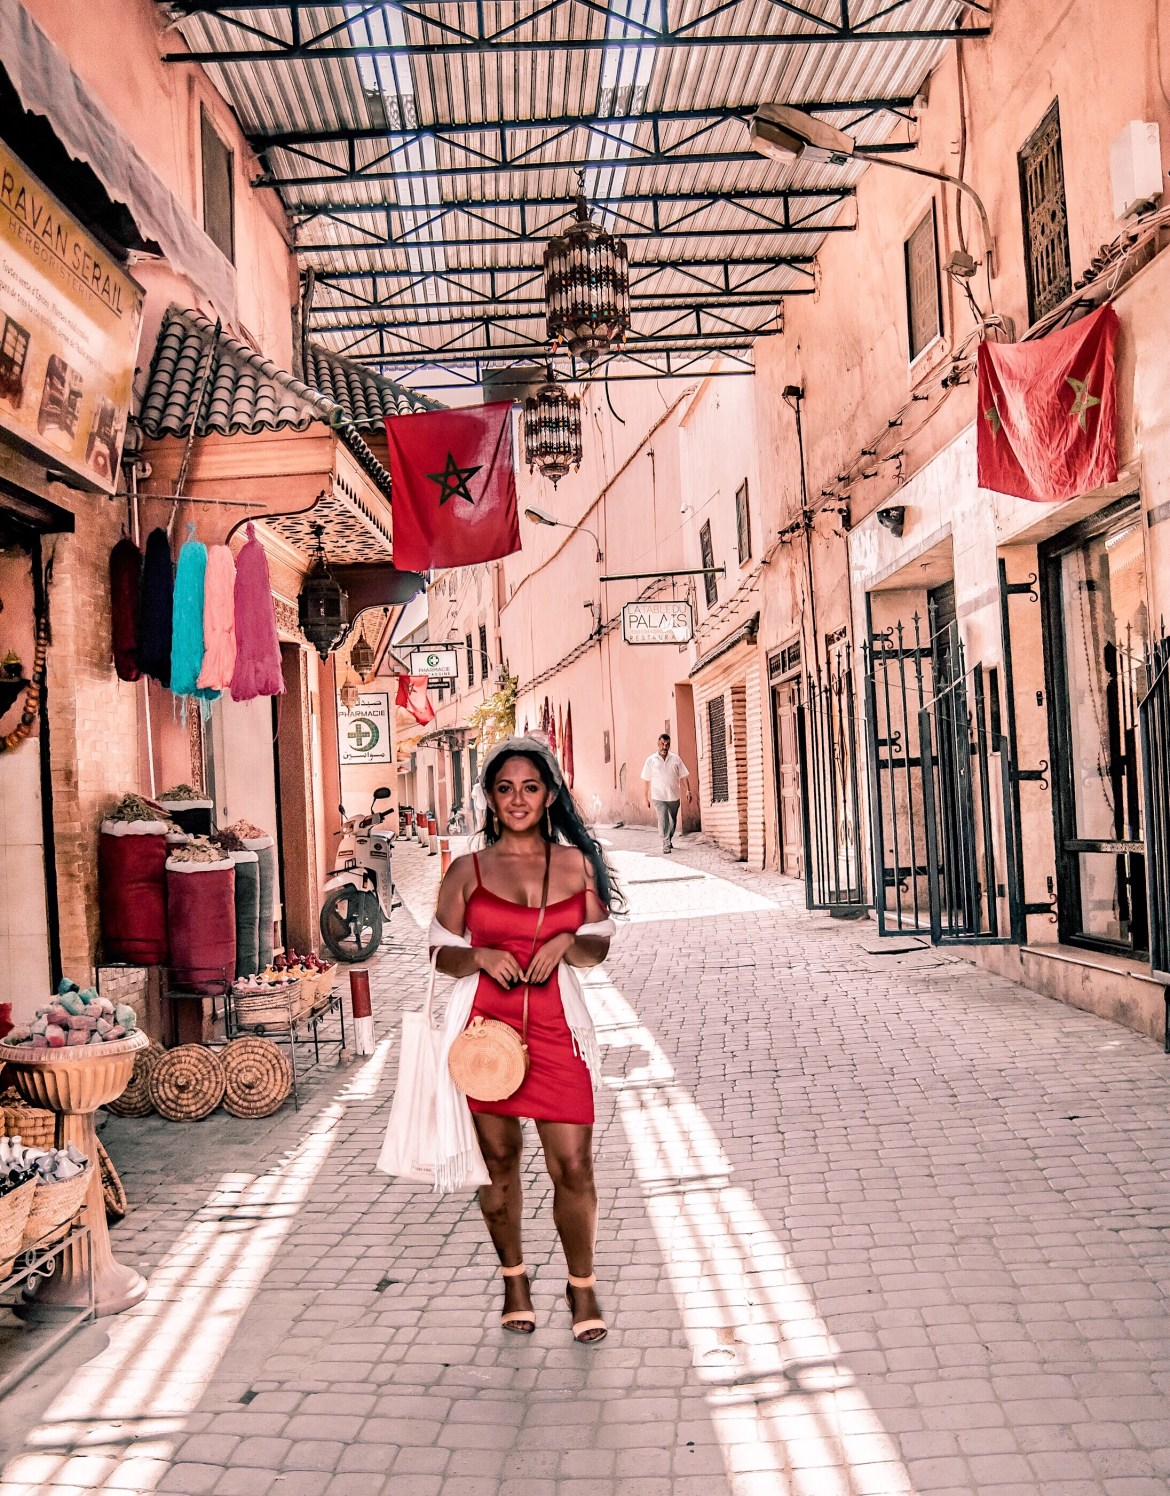 What-Color-Shoes-To-Wear-With-A-Red-Dress-How-To-Wear-A-Summer-Red-Dress-What-To-Wear-In-Morocco-Marrakech-Paris-Chic-Style-4